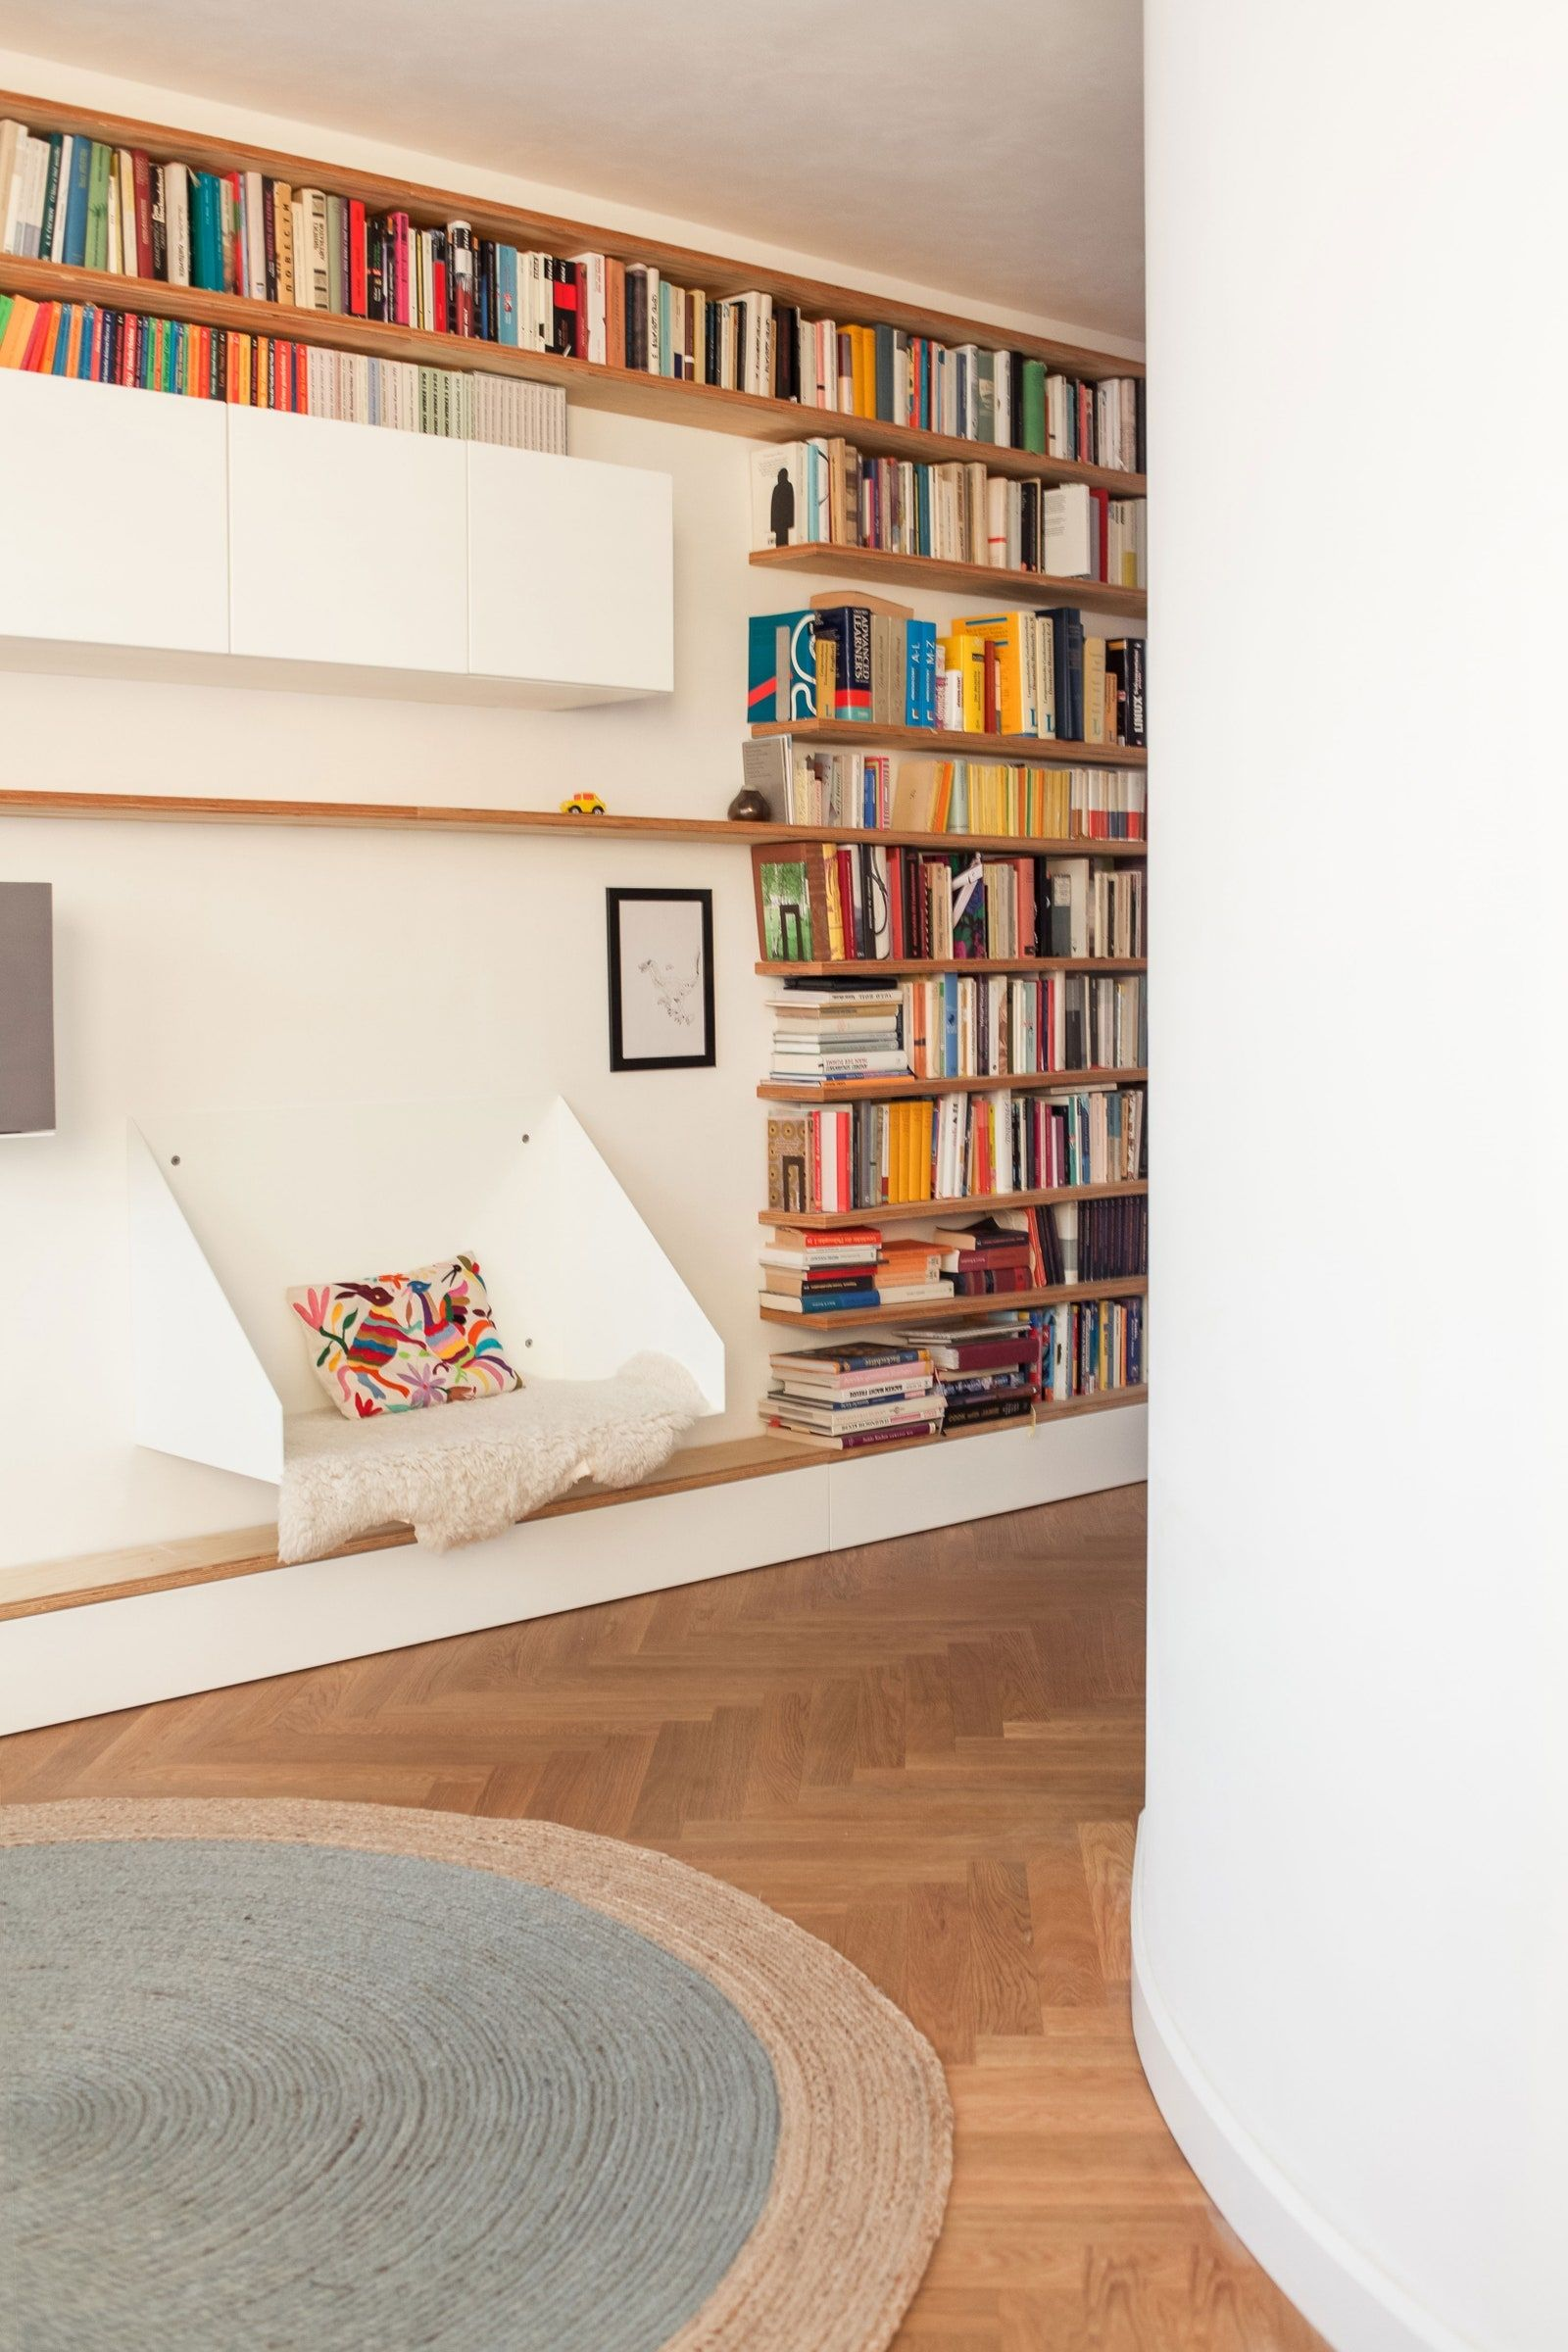 20 Genius Storage Ideas For Small Spaces In 2020 Small House